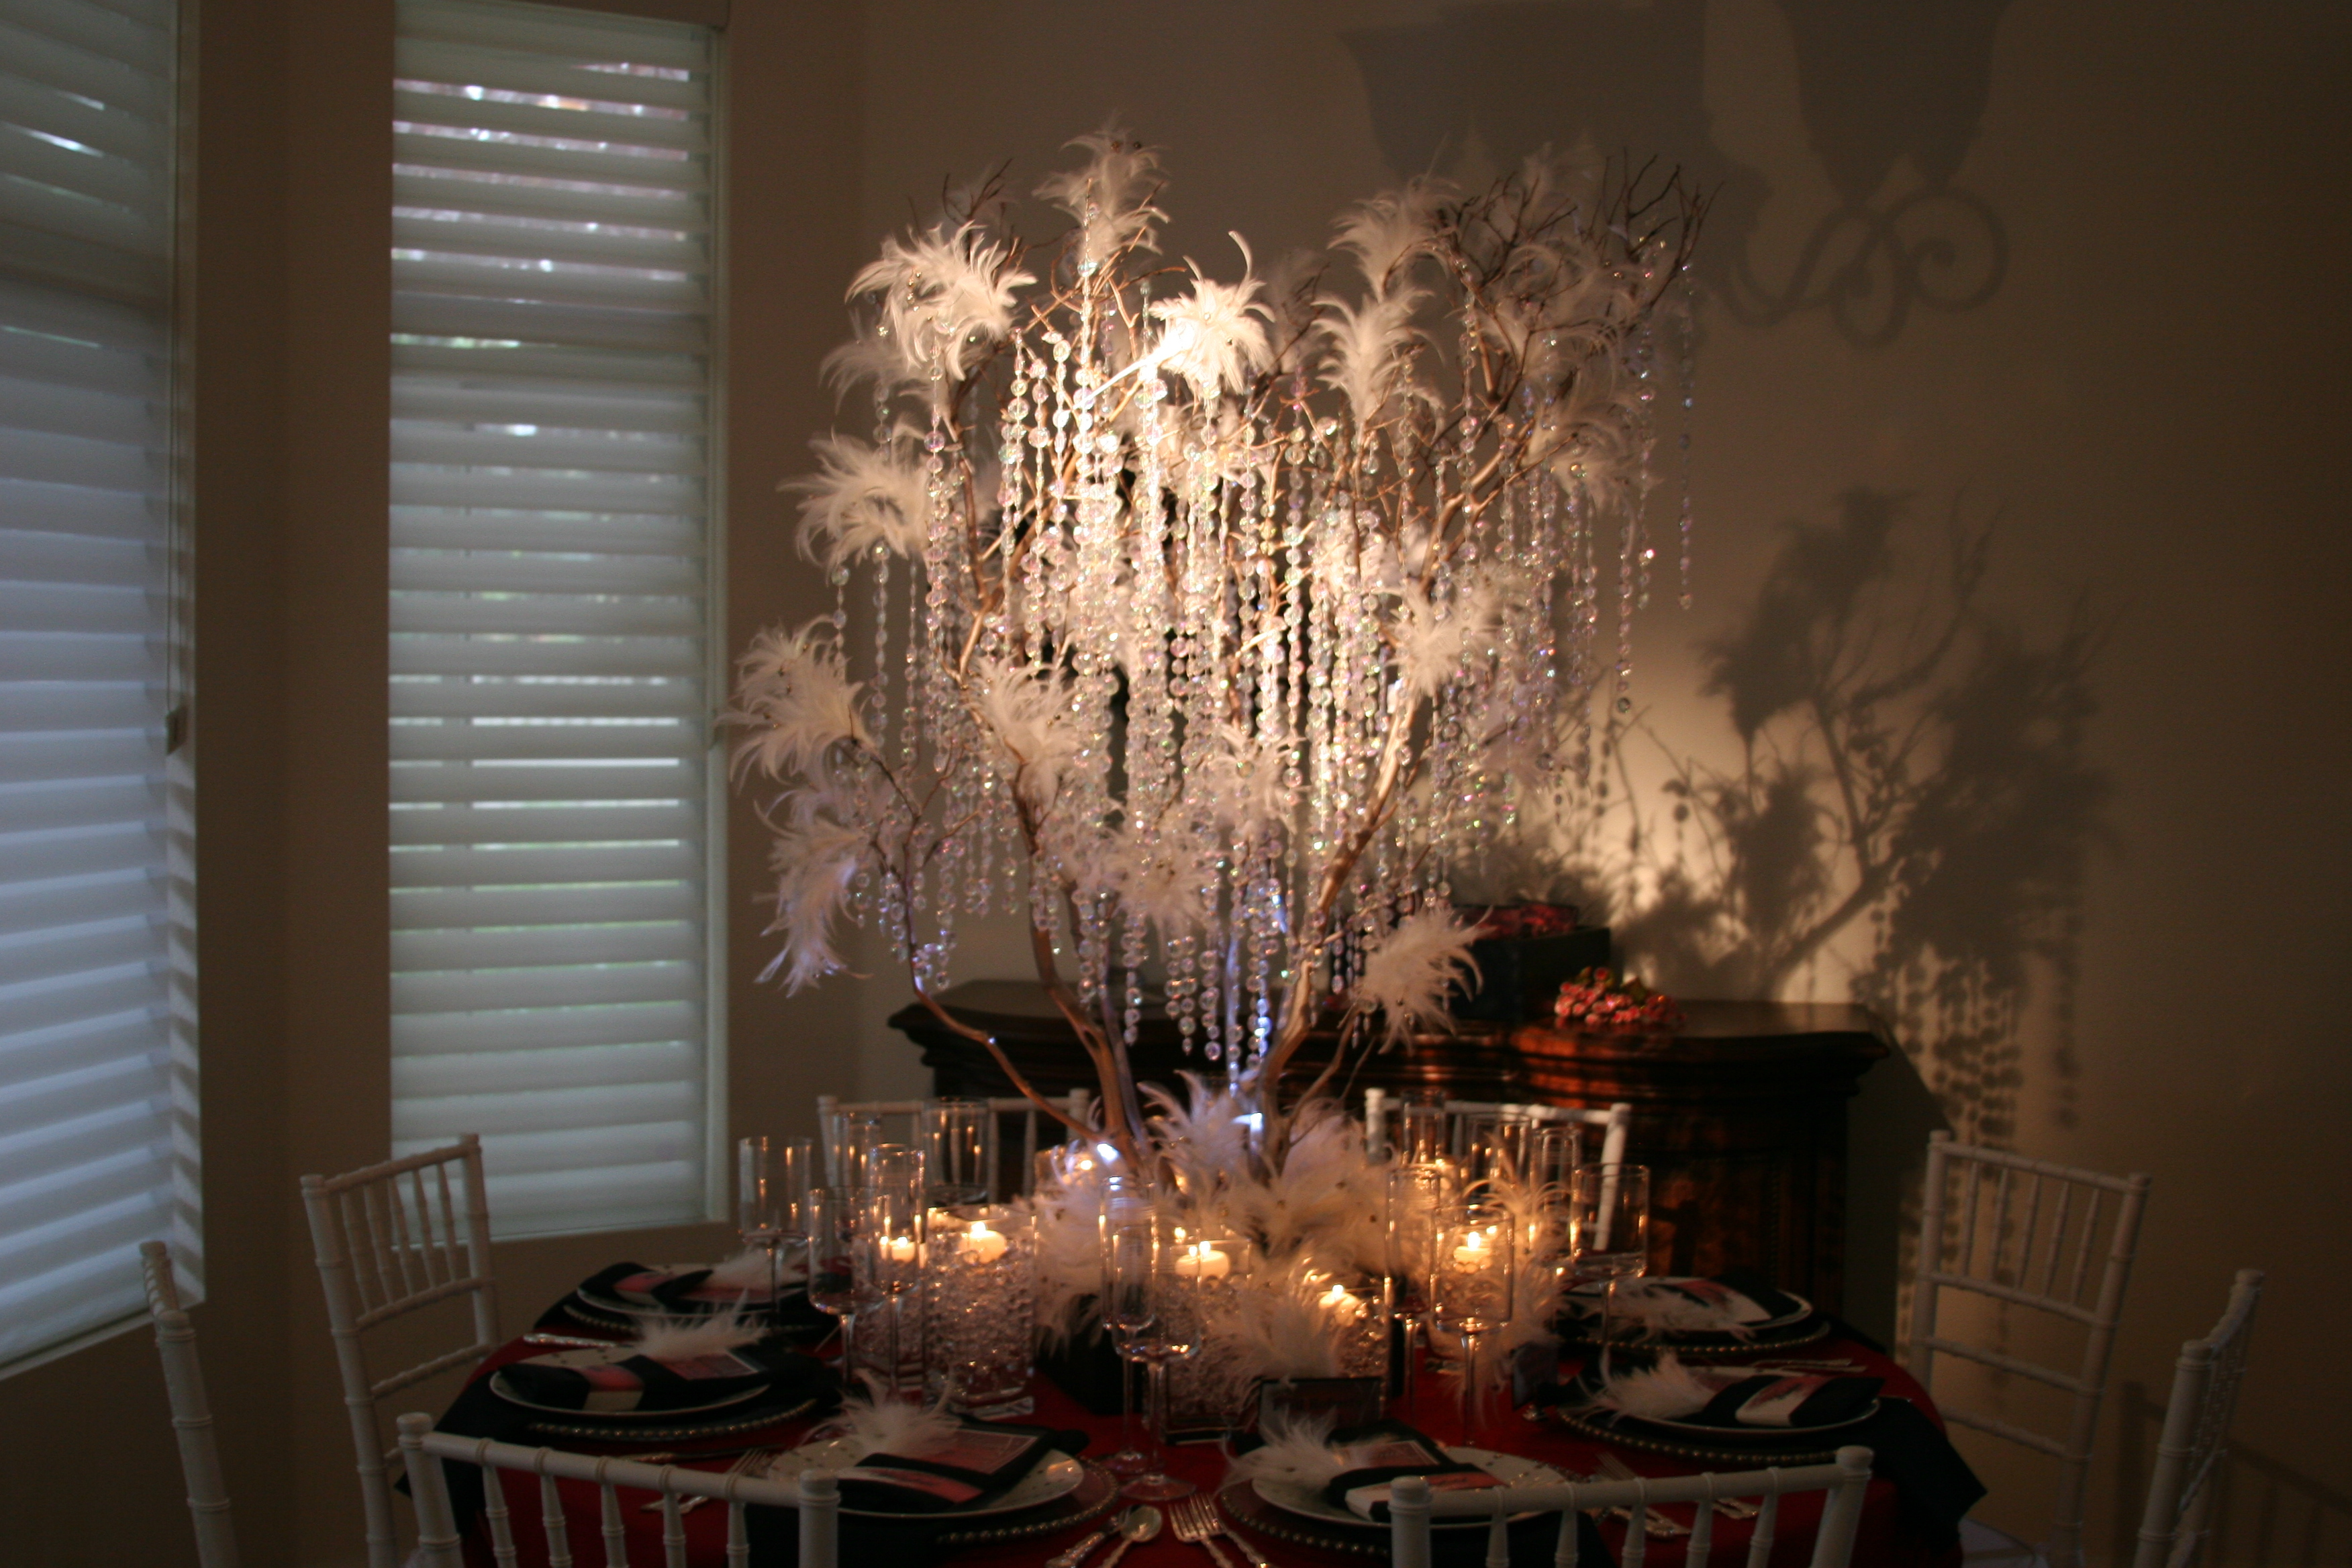 Ceremony, Reception, Flowers & Decor, Stationery, white, red, black, Candles, Invitations, Branches, Tree, Inspiration board, Manzanita, Wishing, Bling, Crystals